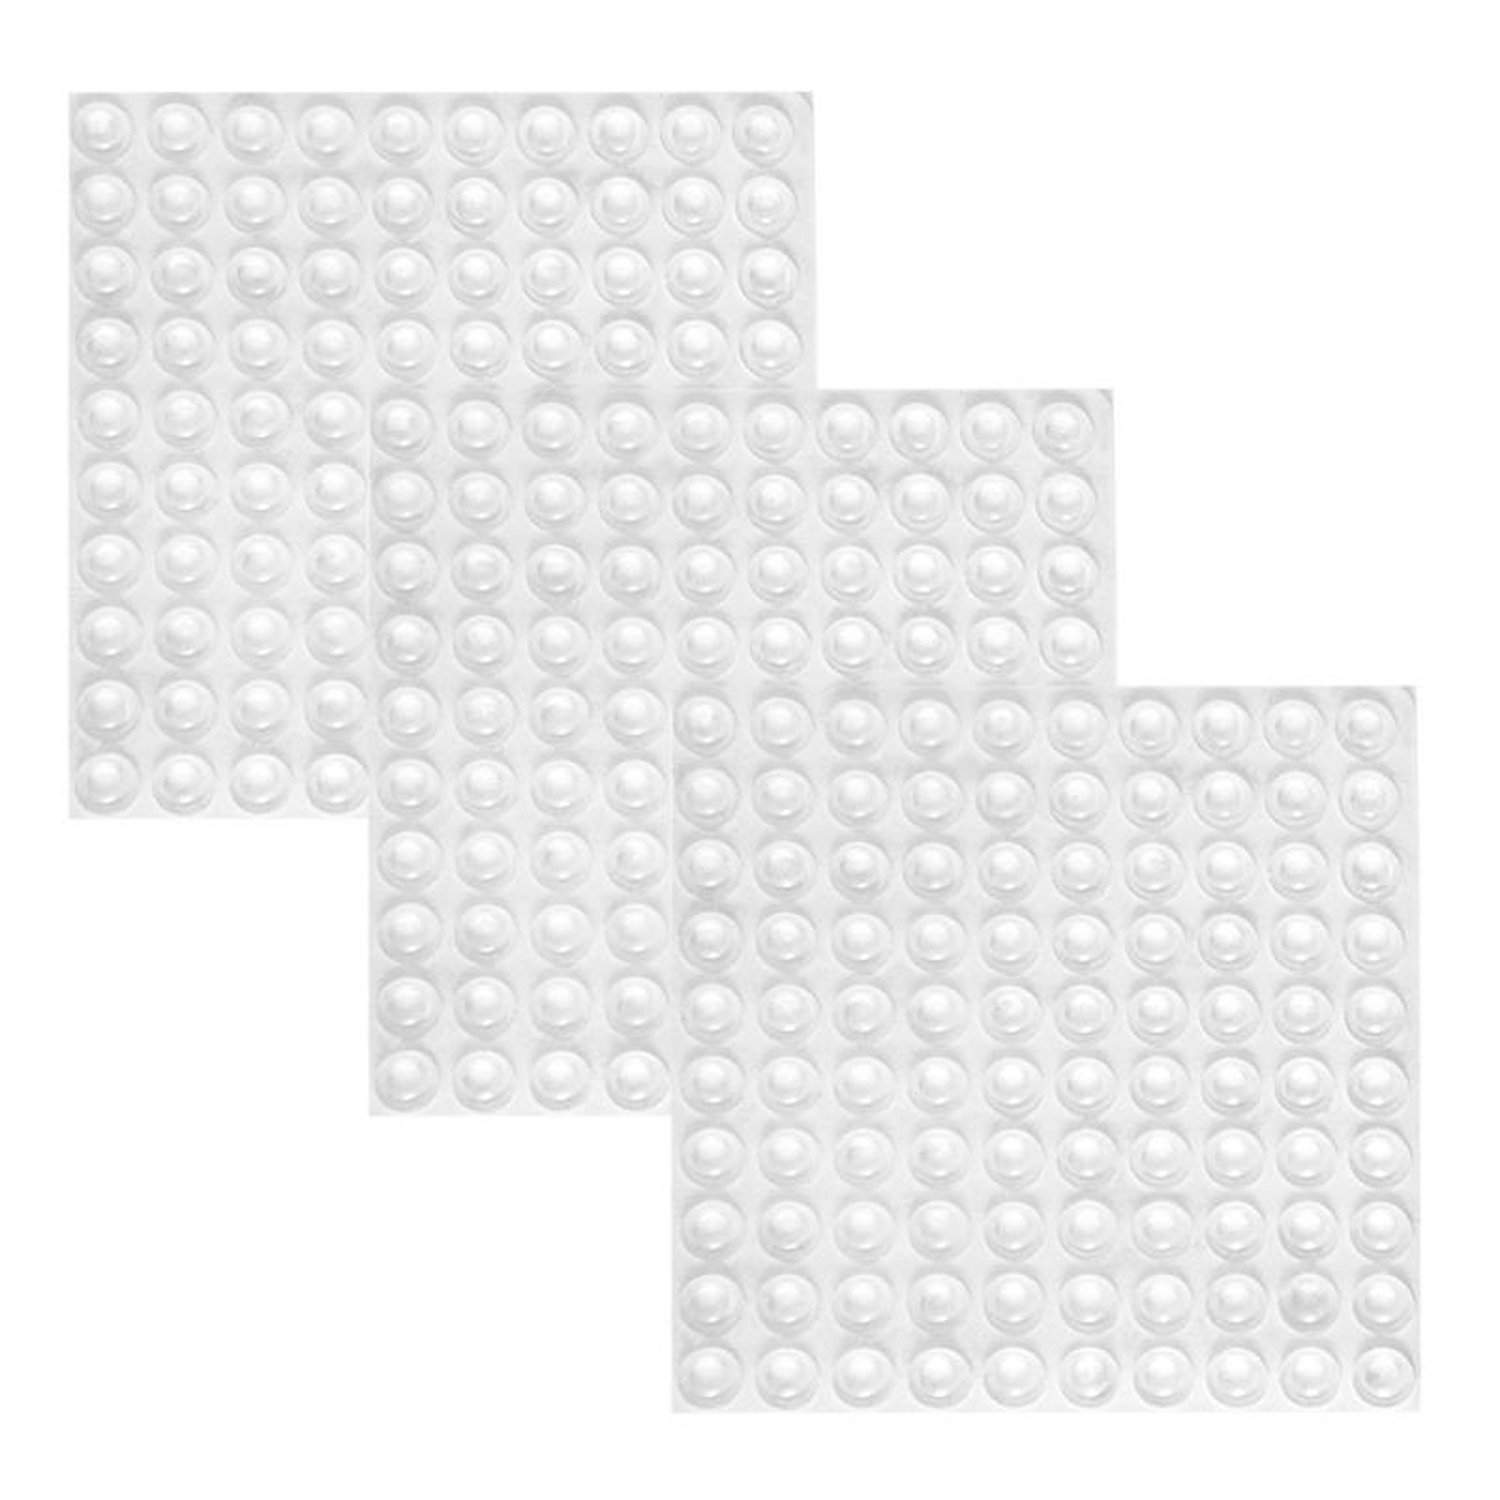 Practical Boutique 300 Pieces Clear Rubber Feet Adhesive Door Bumpers Pads Sound Dampening Cabinet Buffer Pads, 8.5 by 2.5 mmPractical Boutique 300 Pieces Clear Rubber Feet Adhesive Door Bumpers Pads Sound Dampening Cabinet Buffer Pads, 8.5 by 2.5 mm